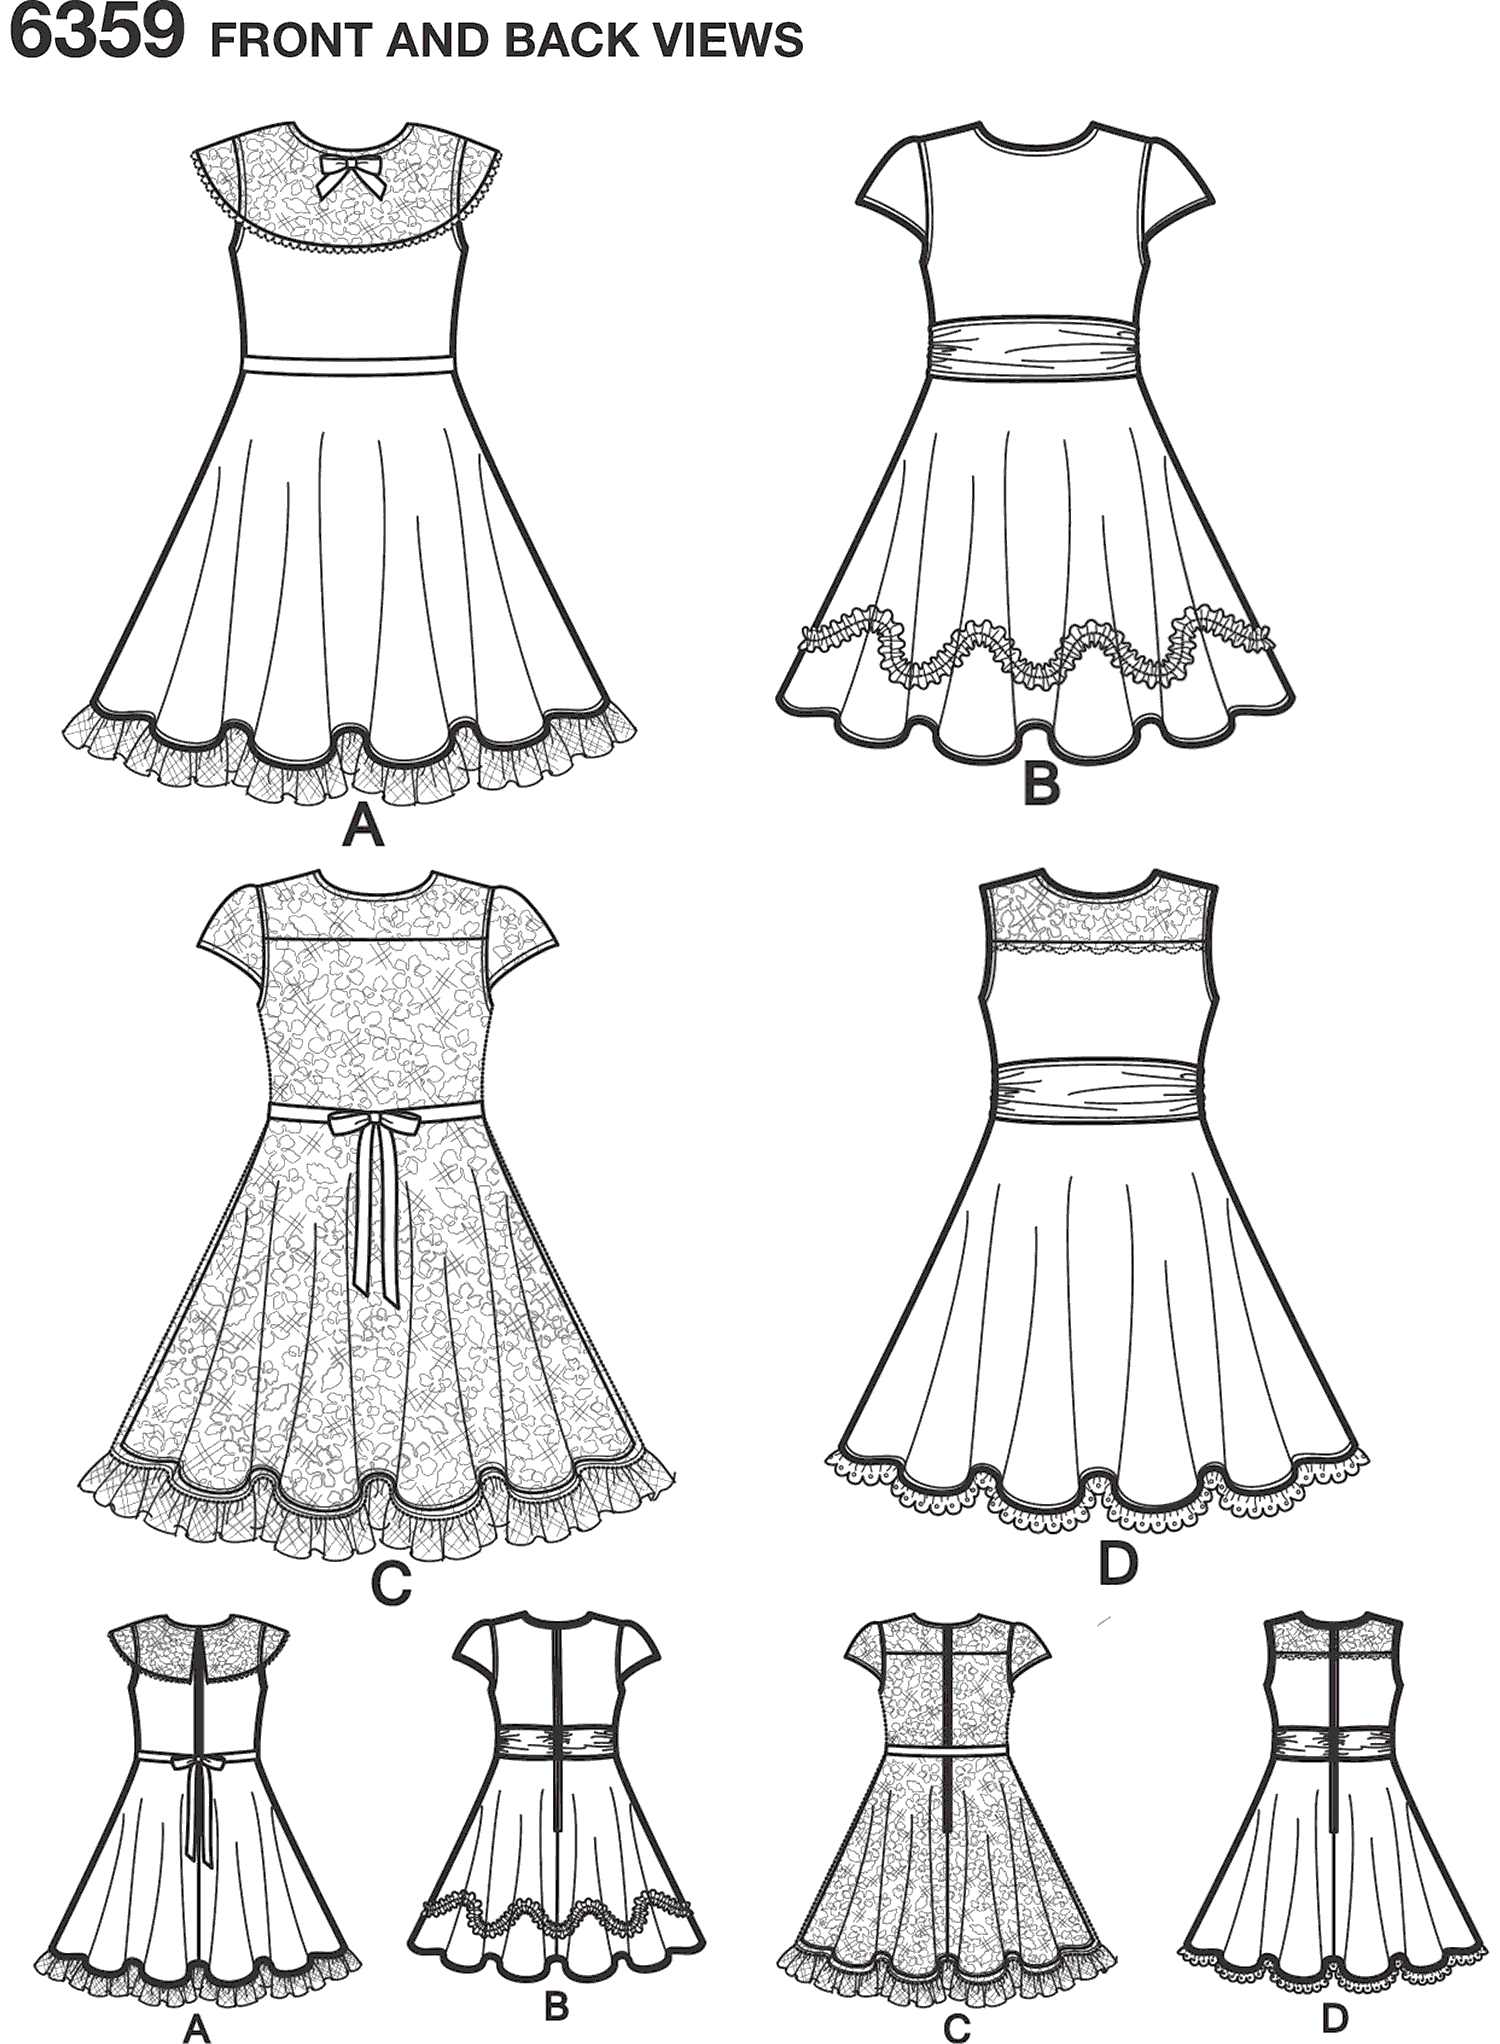 New Look Pattern 6359 Childs Dresses with Lace and Trim Details Line Art From Patternsandplains.com